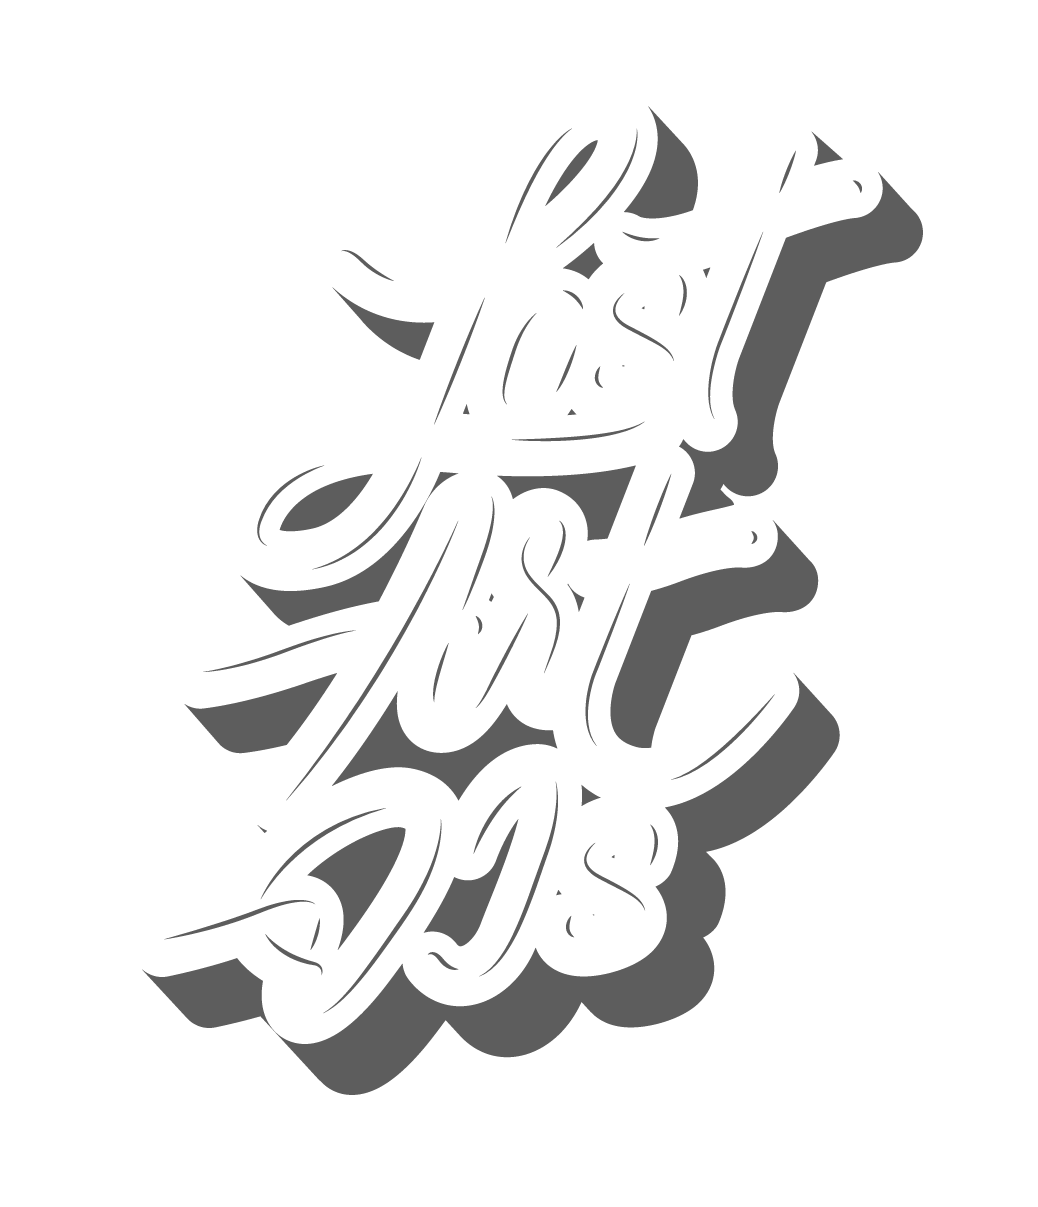 Lost Art DJ's